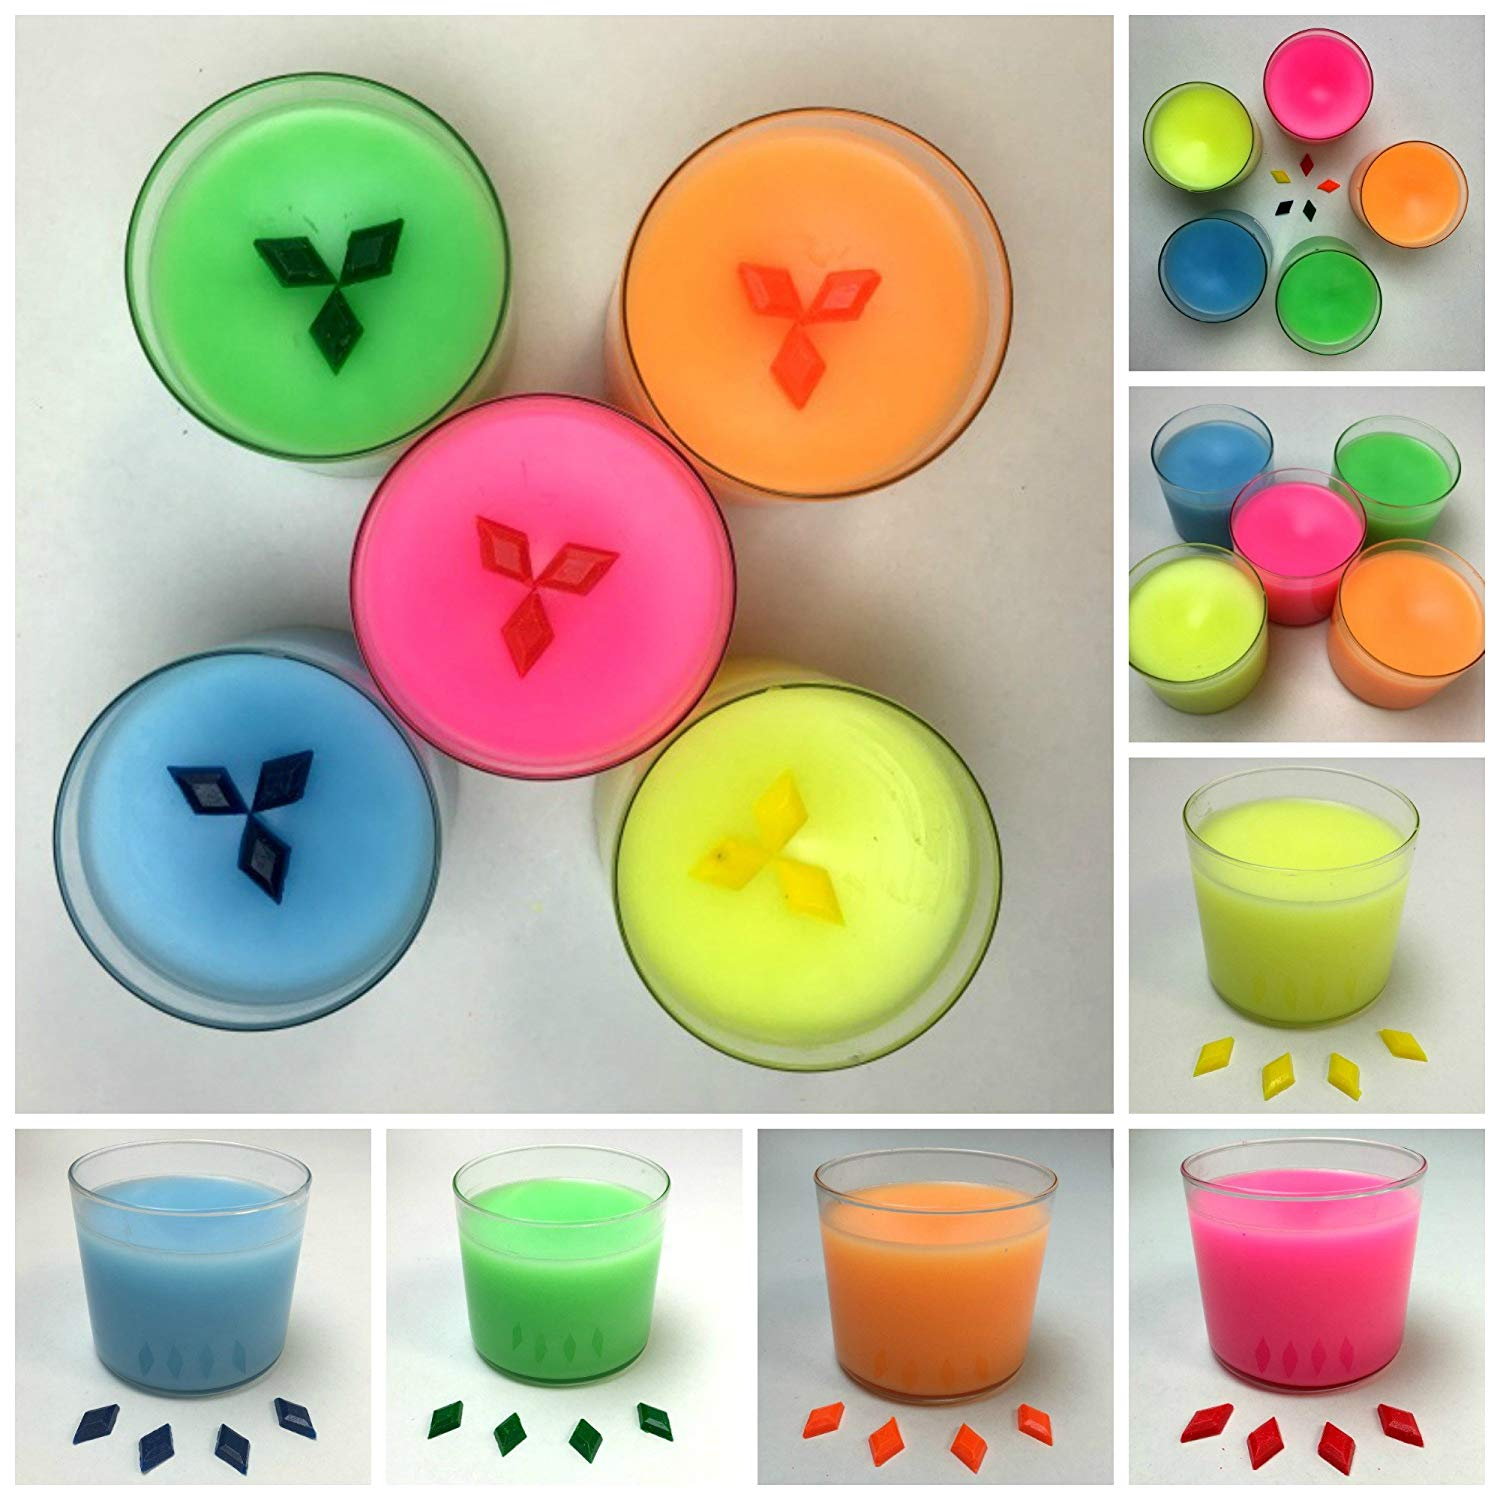 One Pack, Neon Diamond Dye Candle Coloring Sampler Pack Including: Neon Blue, Neon Pink, Neon Green, Neon Orange, Neon Yellow